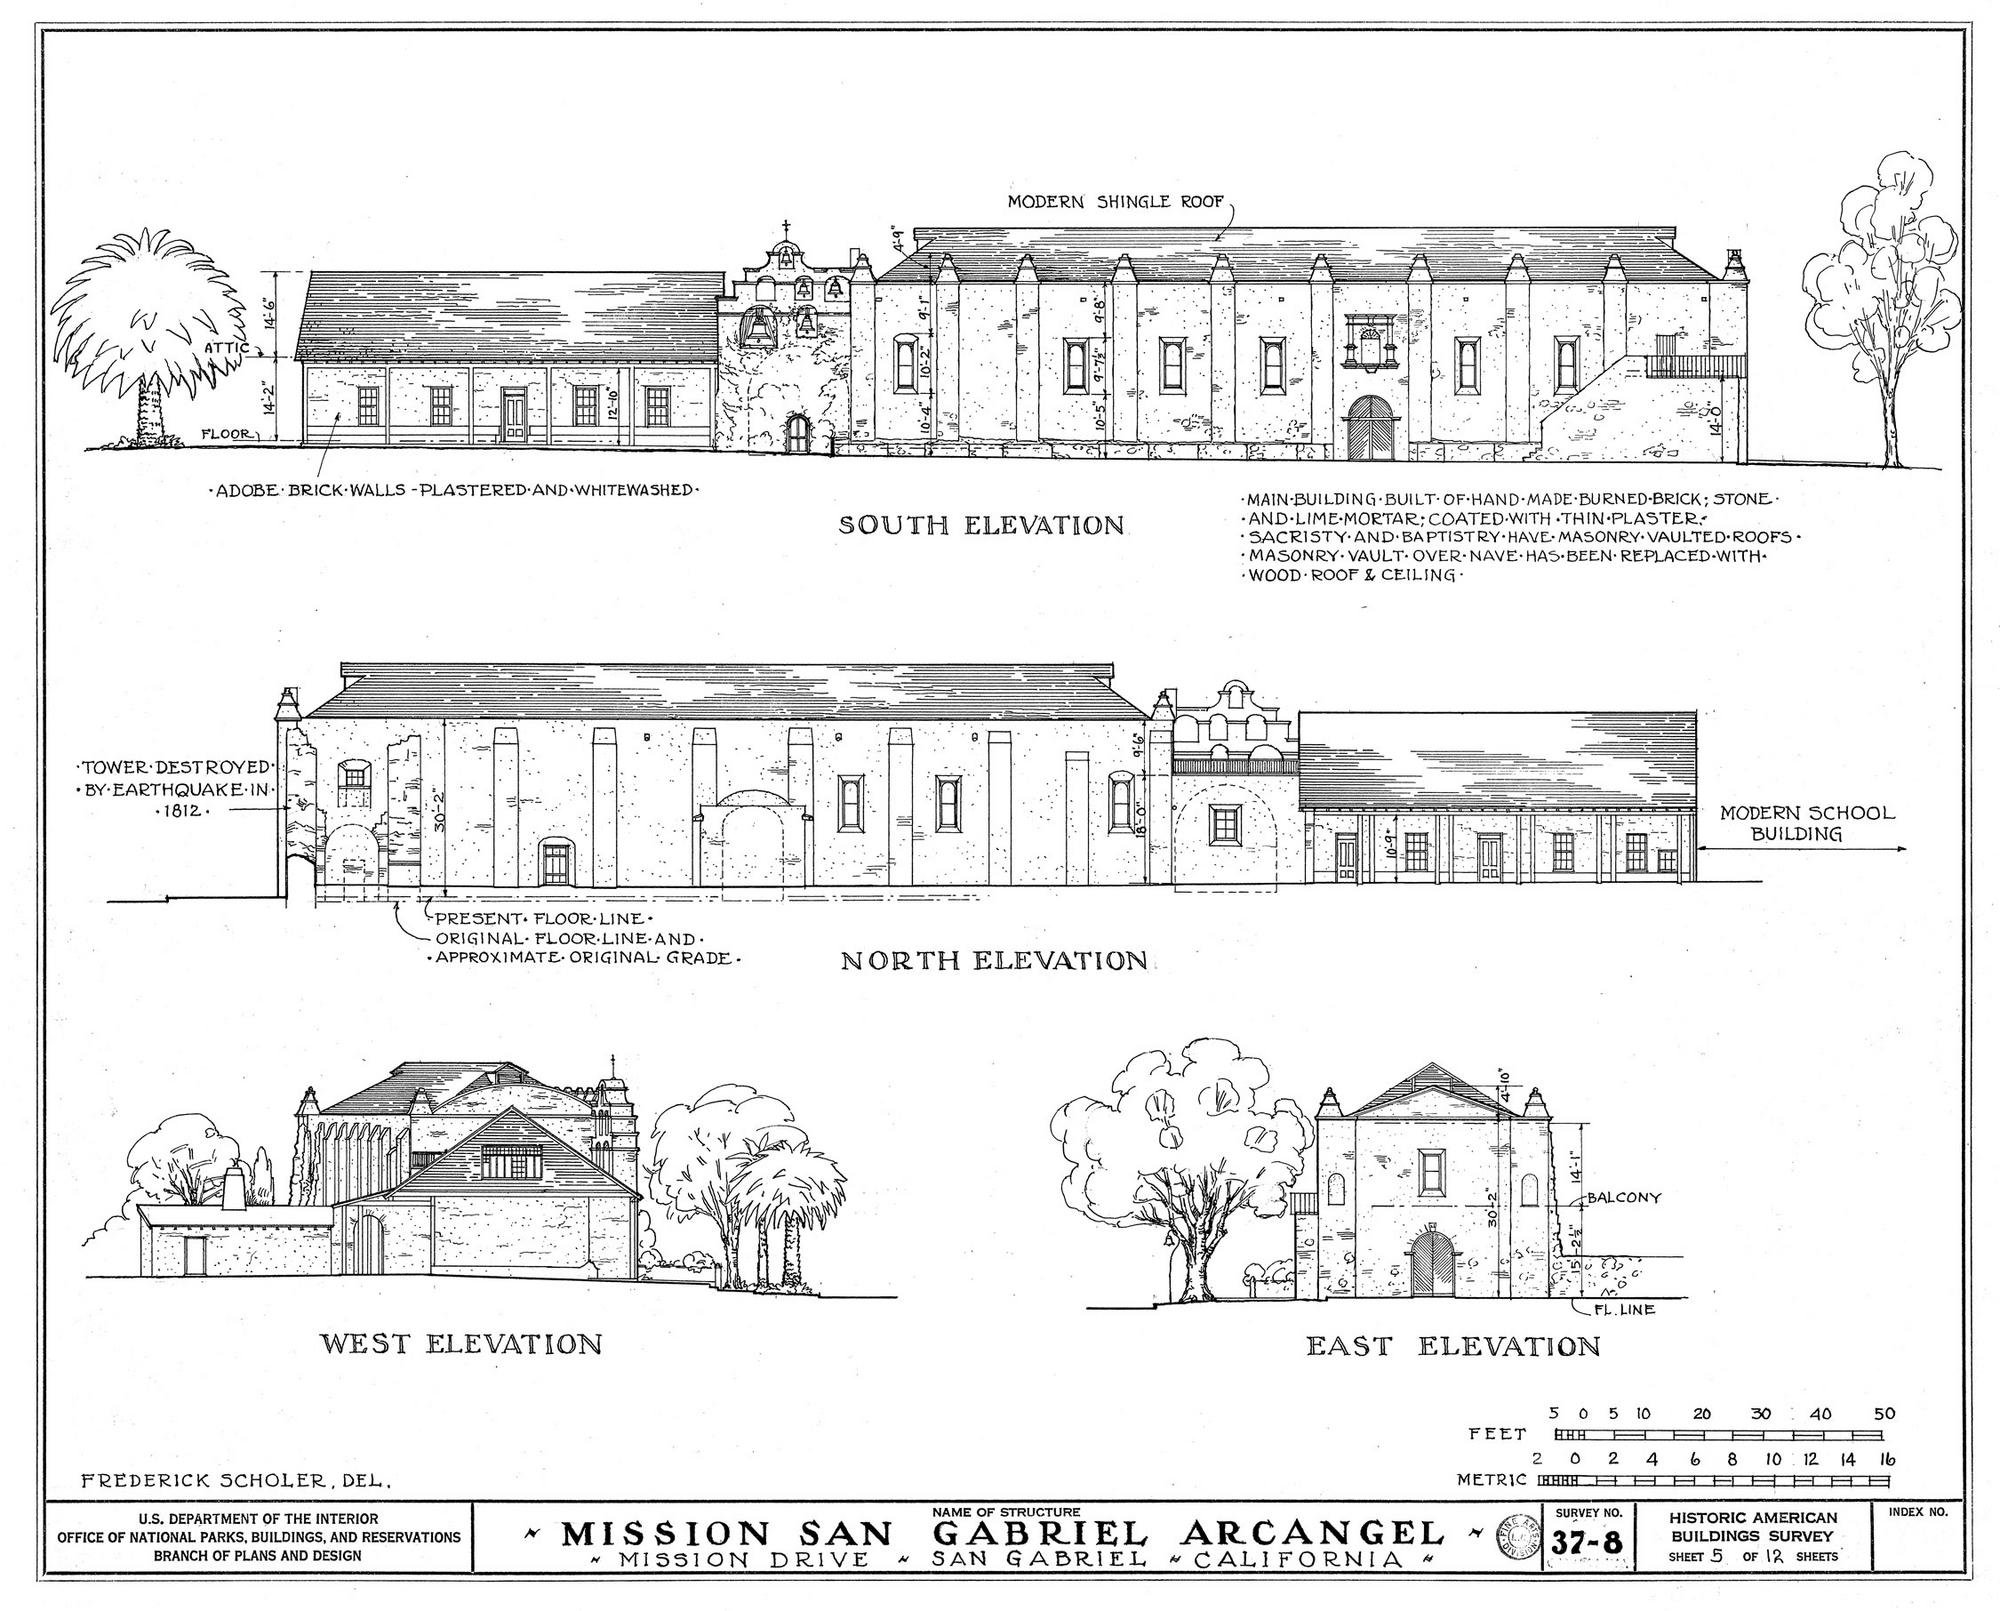 Elevation drawings of the mission by the U.S. Department of the Interior, noting in several places which portions of the structure are original and which have been rebuilt.